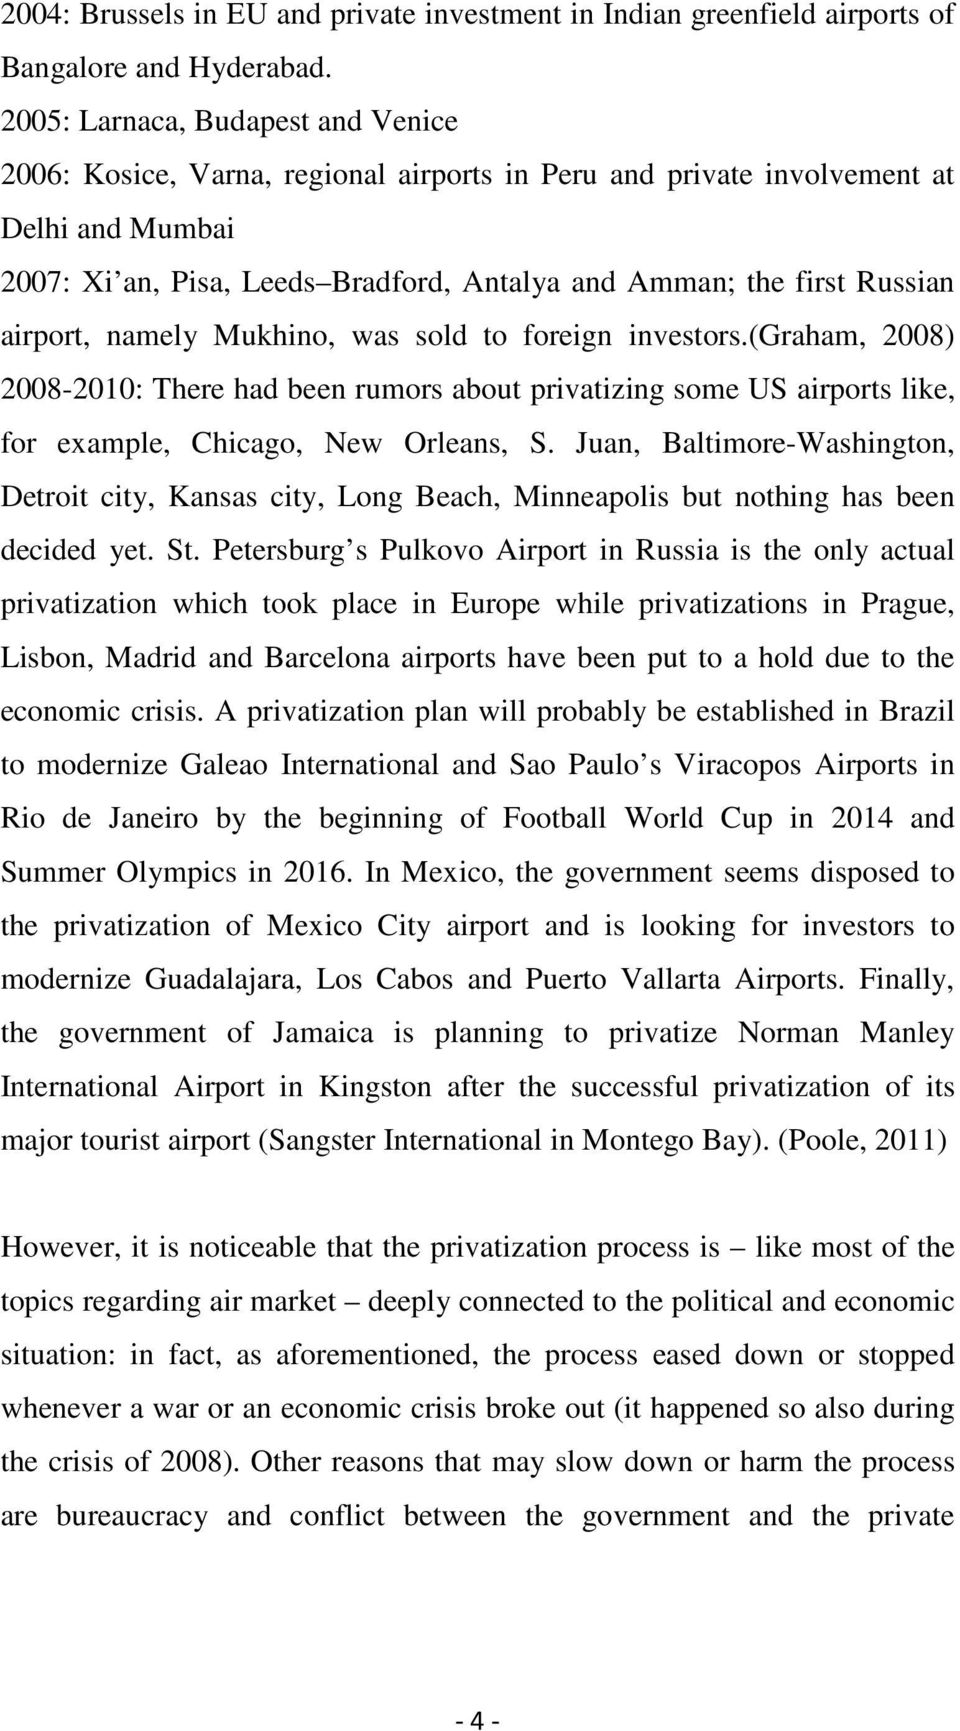 airport, namely Mukhino, was sold to foreign investors.(graham, 2008) 2008-2010: There had been rumors about privatizing some US airports like, for example, Chicago, New Orleans, S.